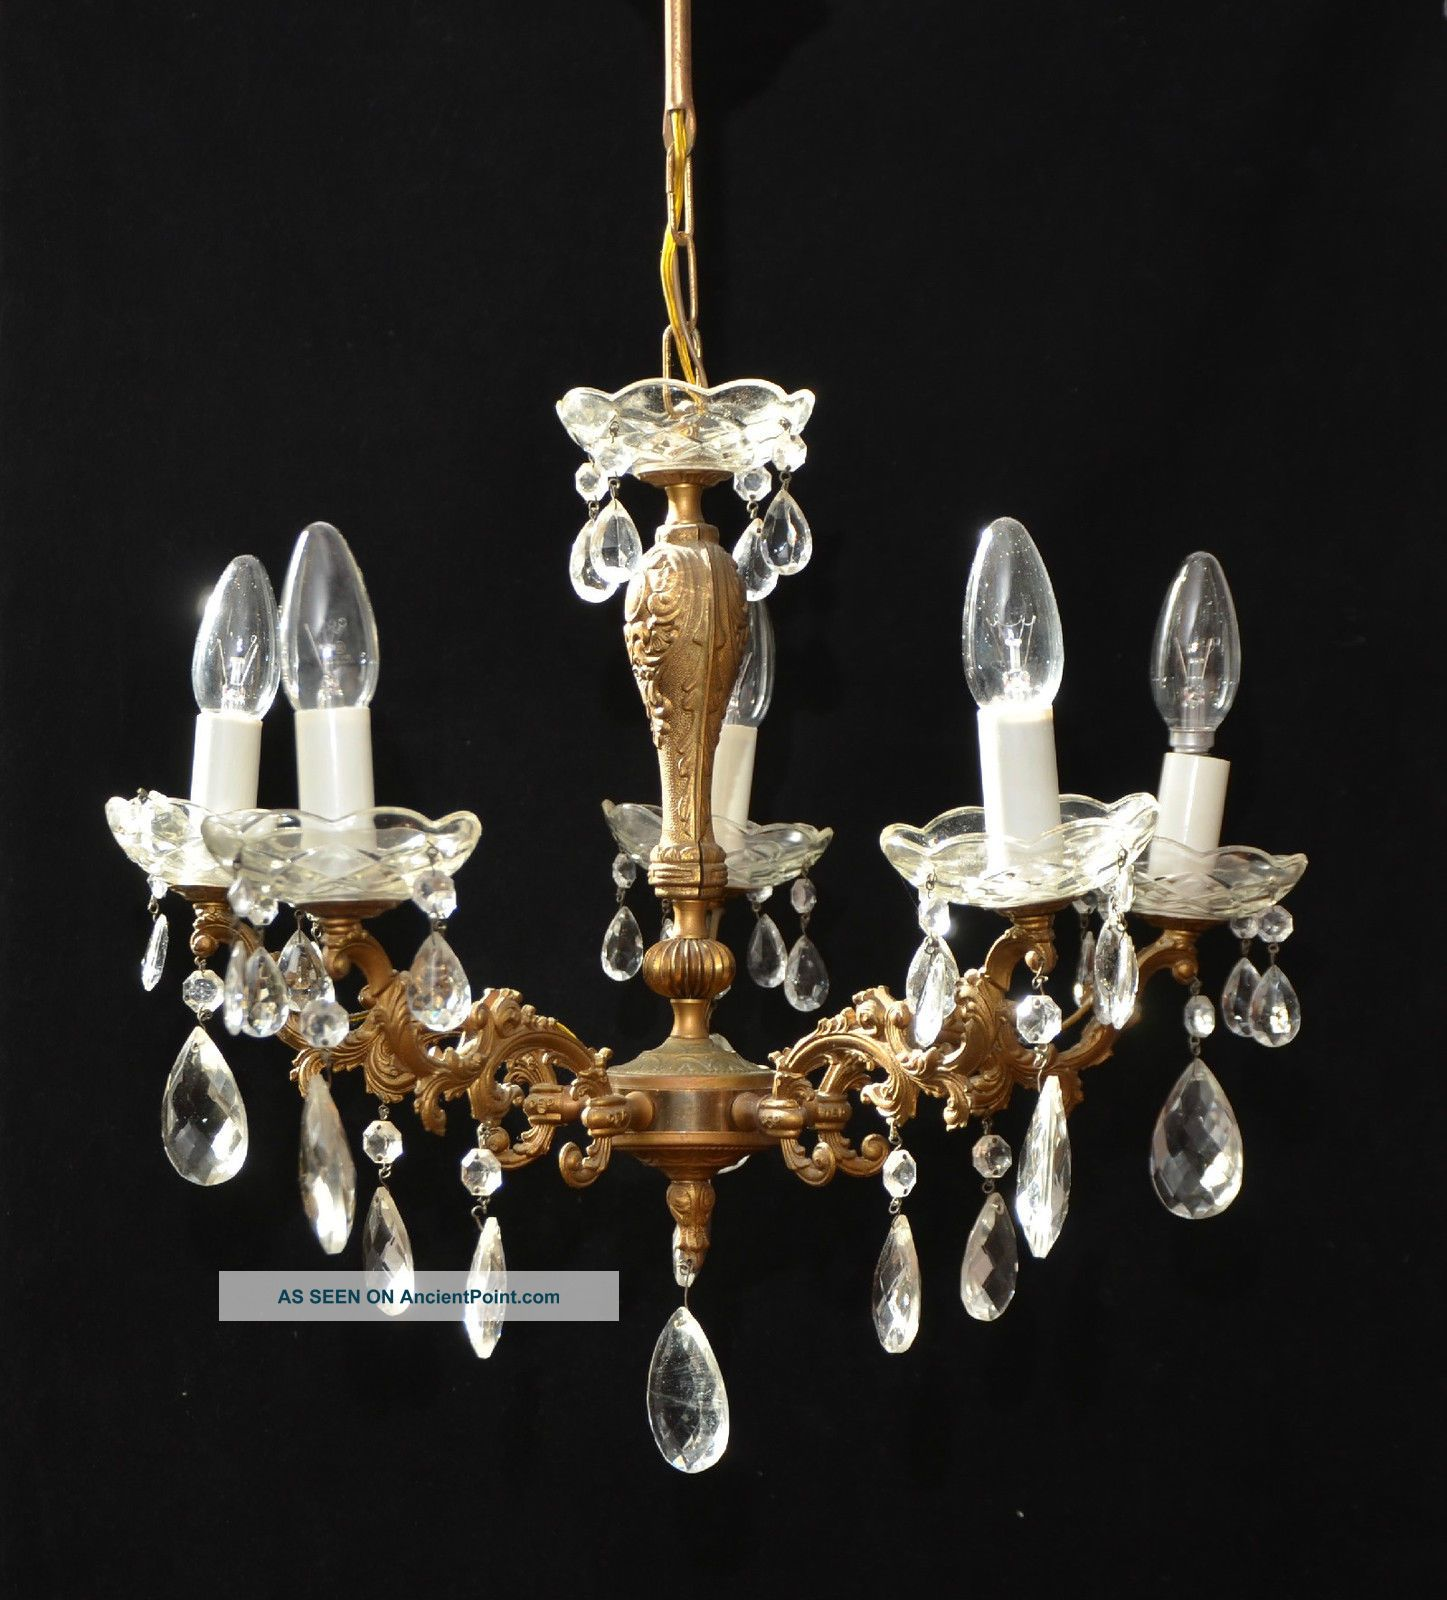 Vintage French 5 Branch Chandelier Ceiling Light Crystals Chandeliers, Fixtures, Sconces photo